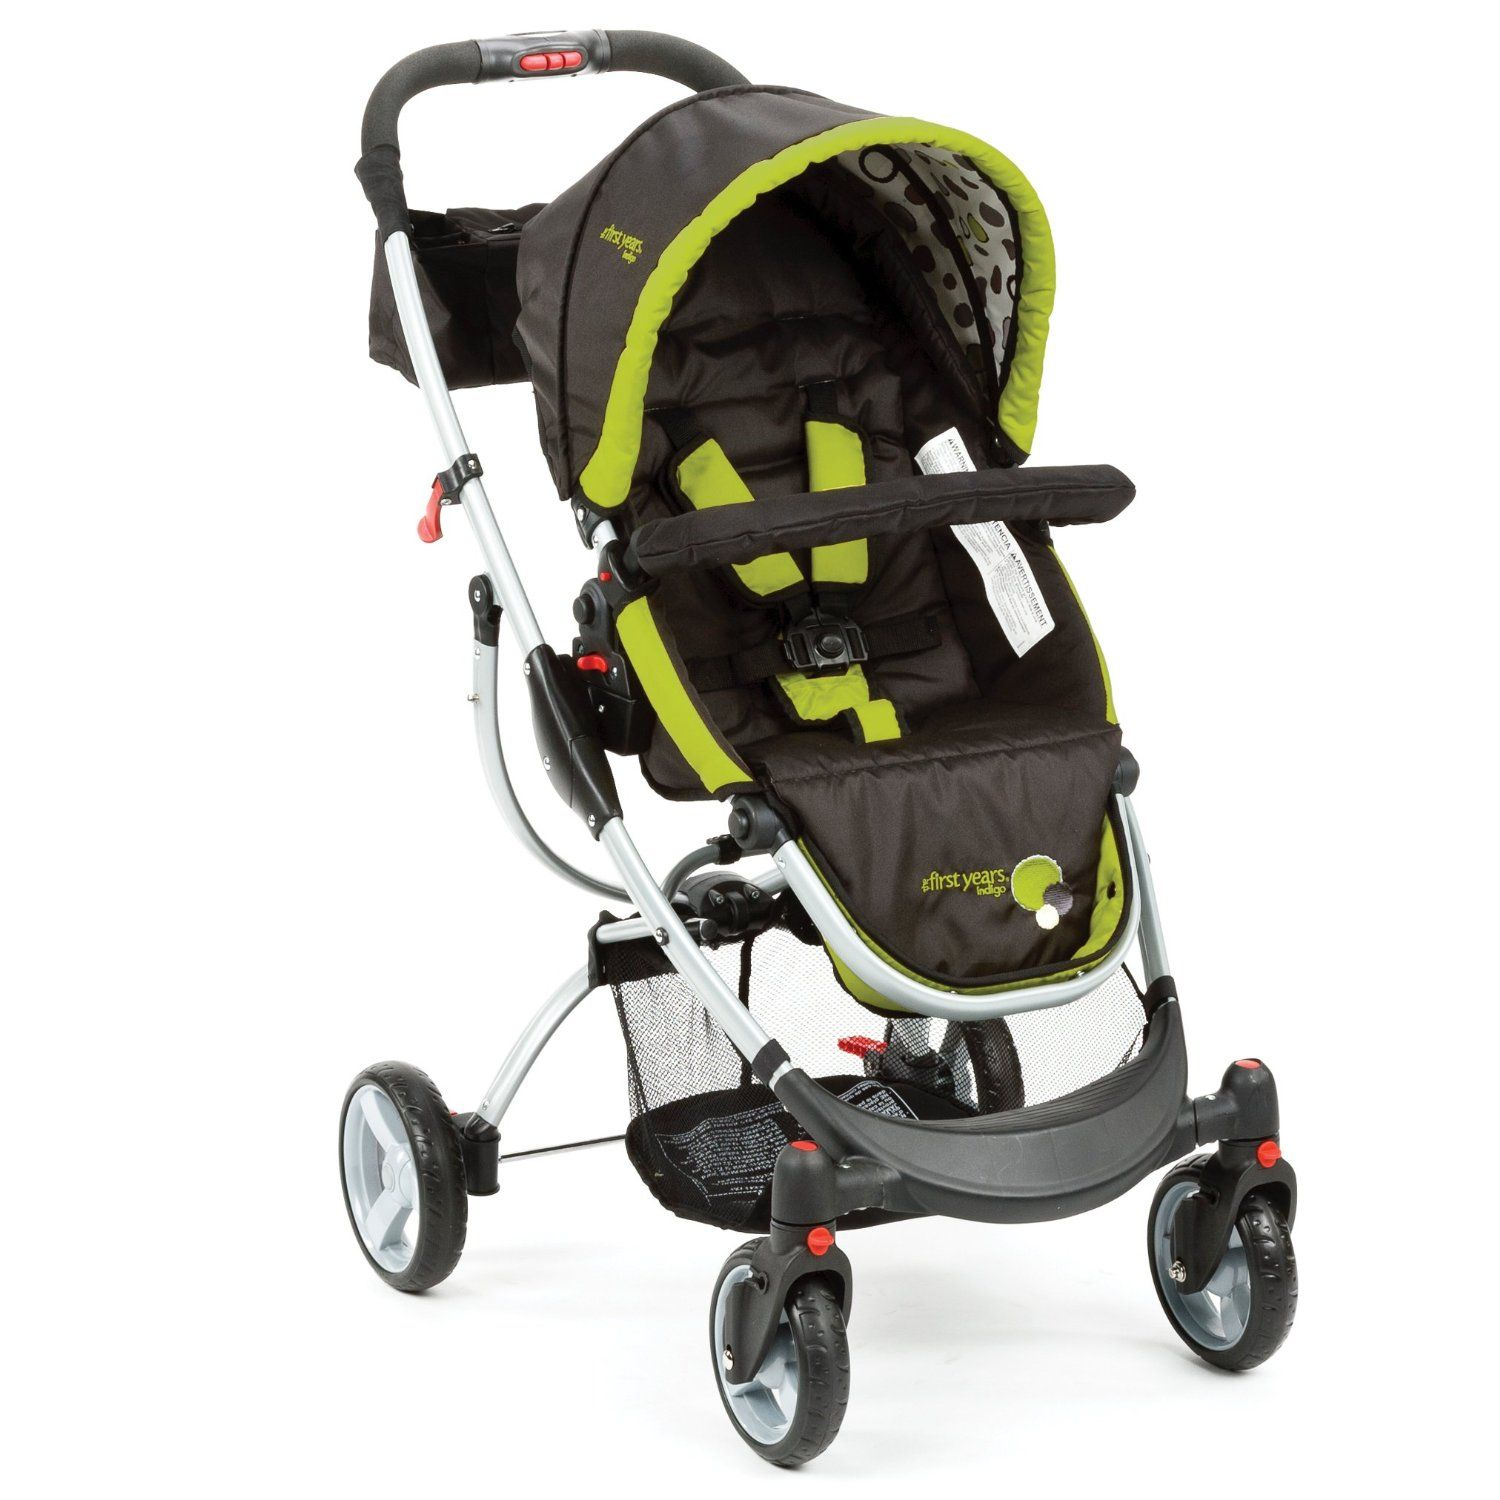 The First Years Indigo Stroller, Black/Green